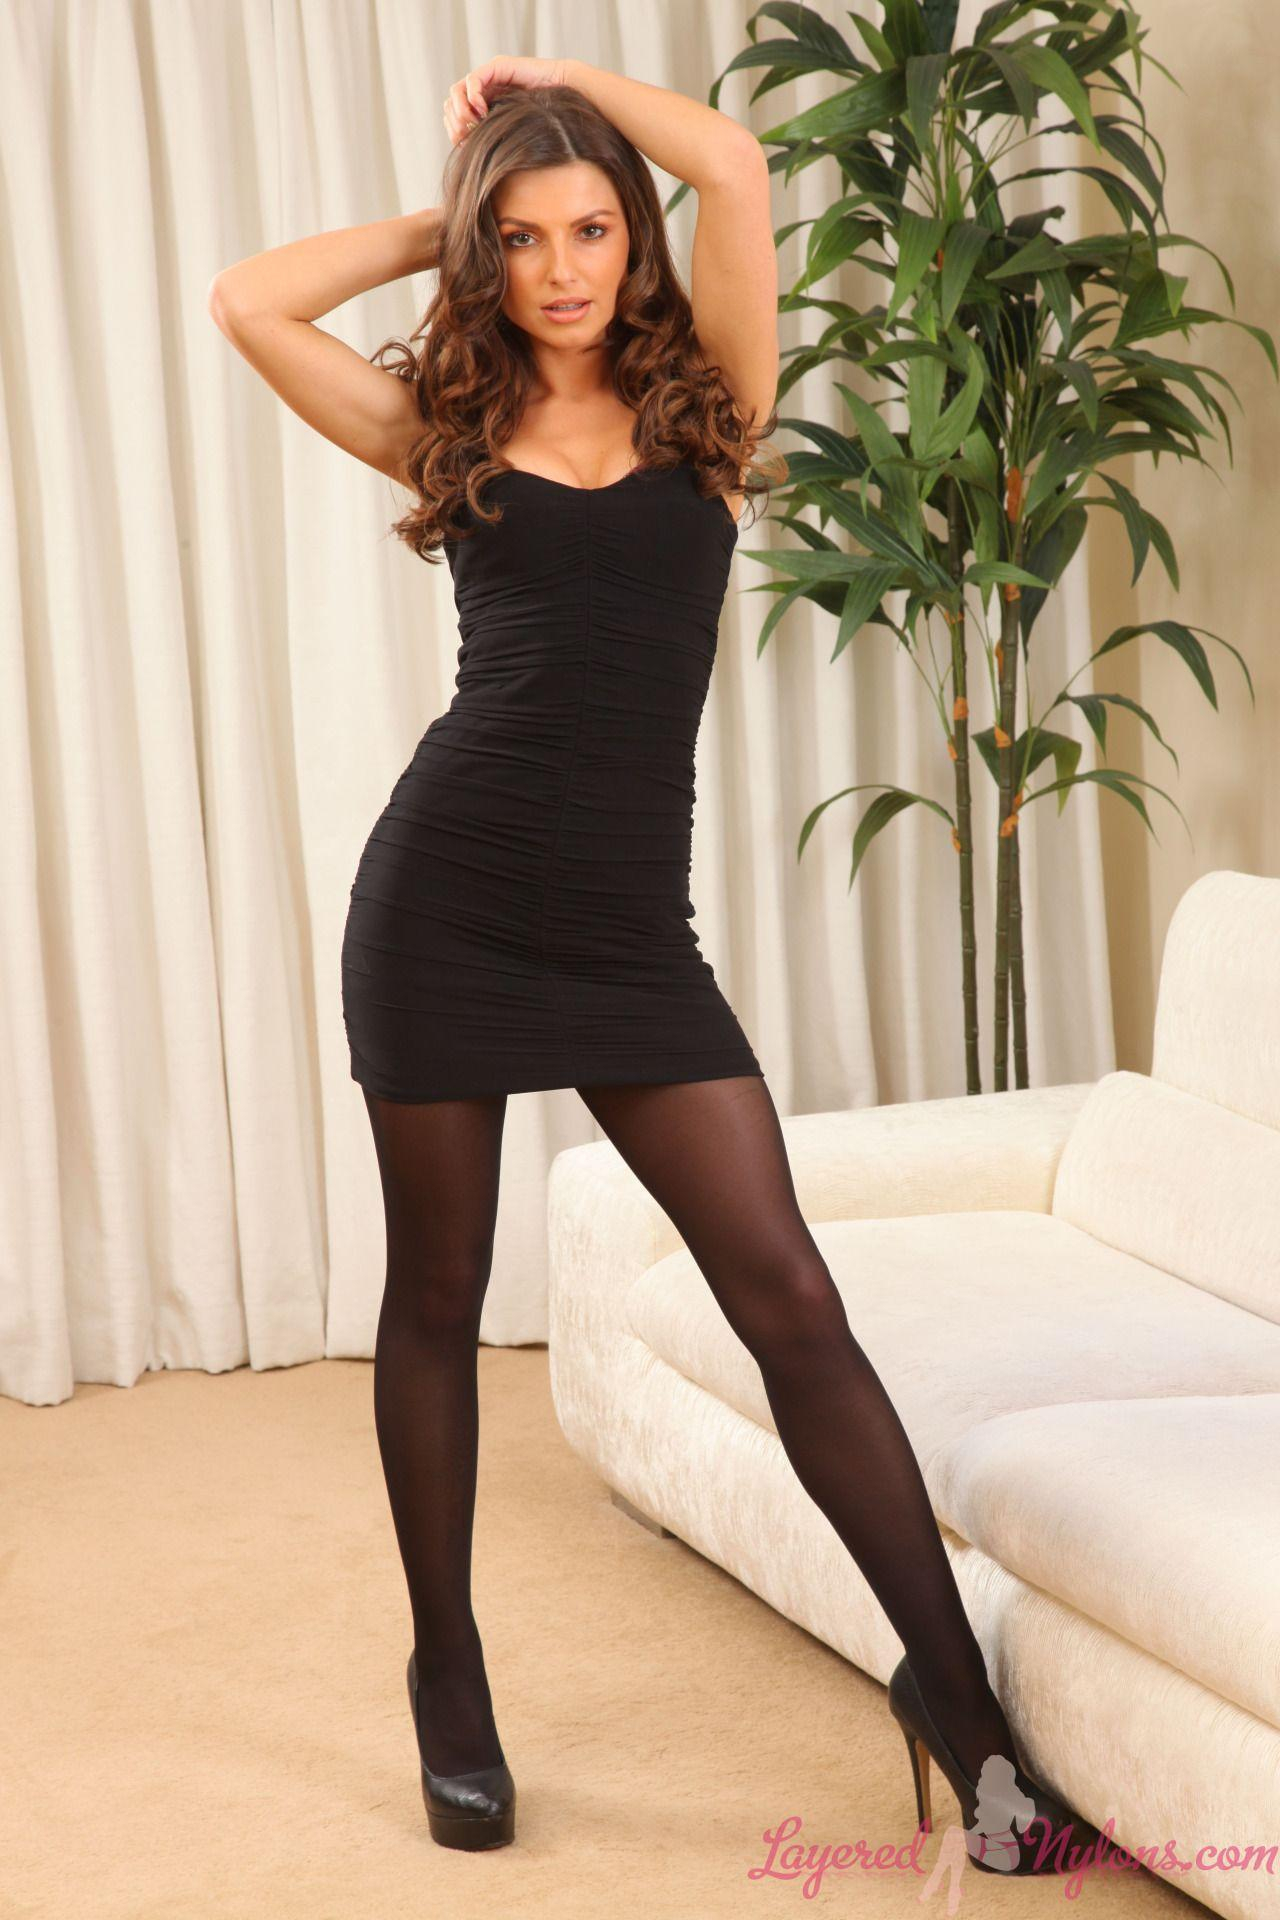 Benz reccomend Mini skirt legs pantyhose